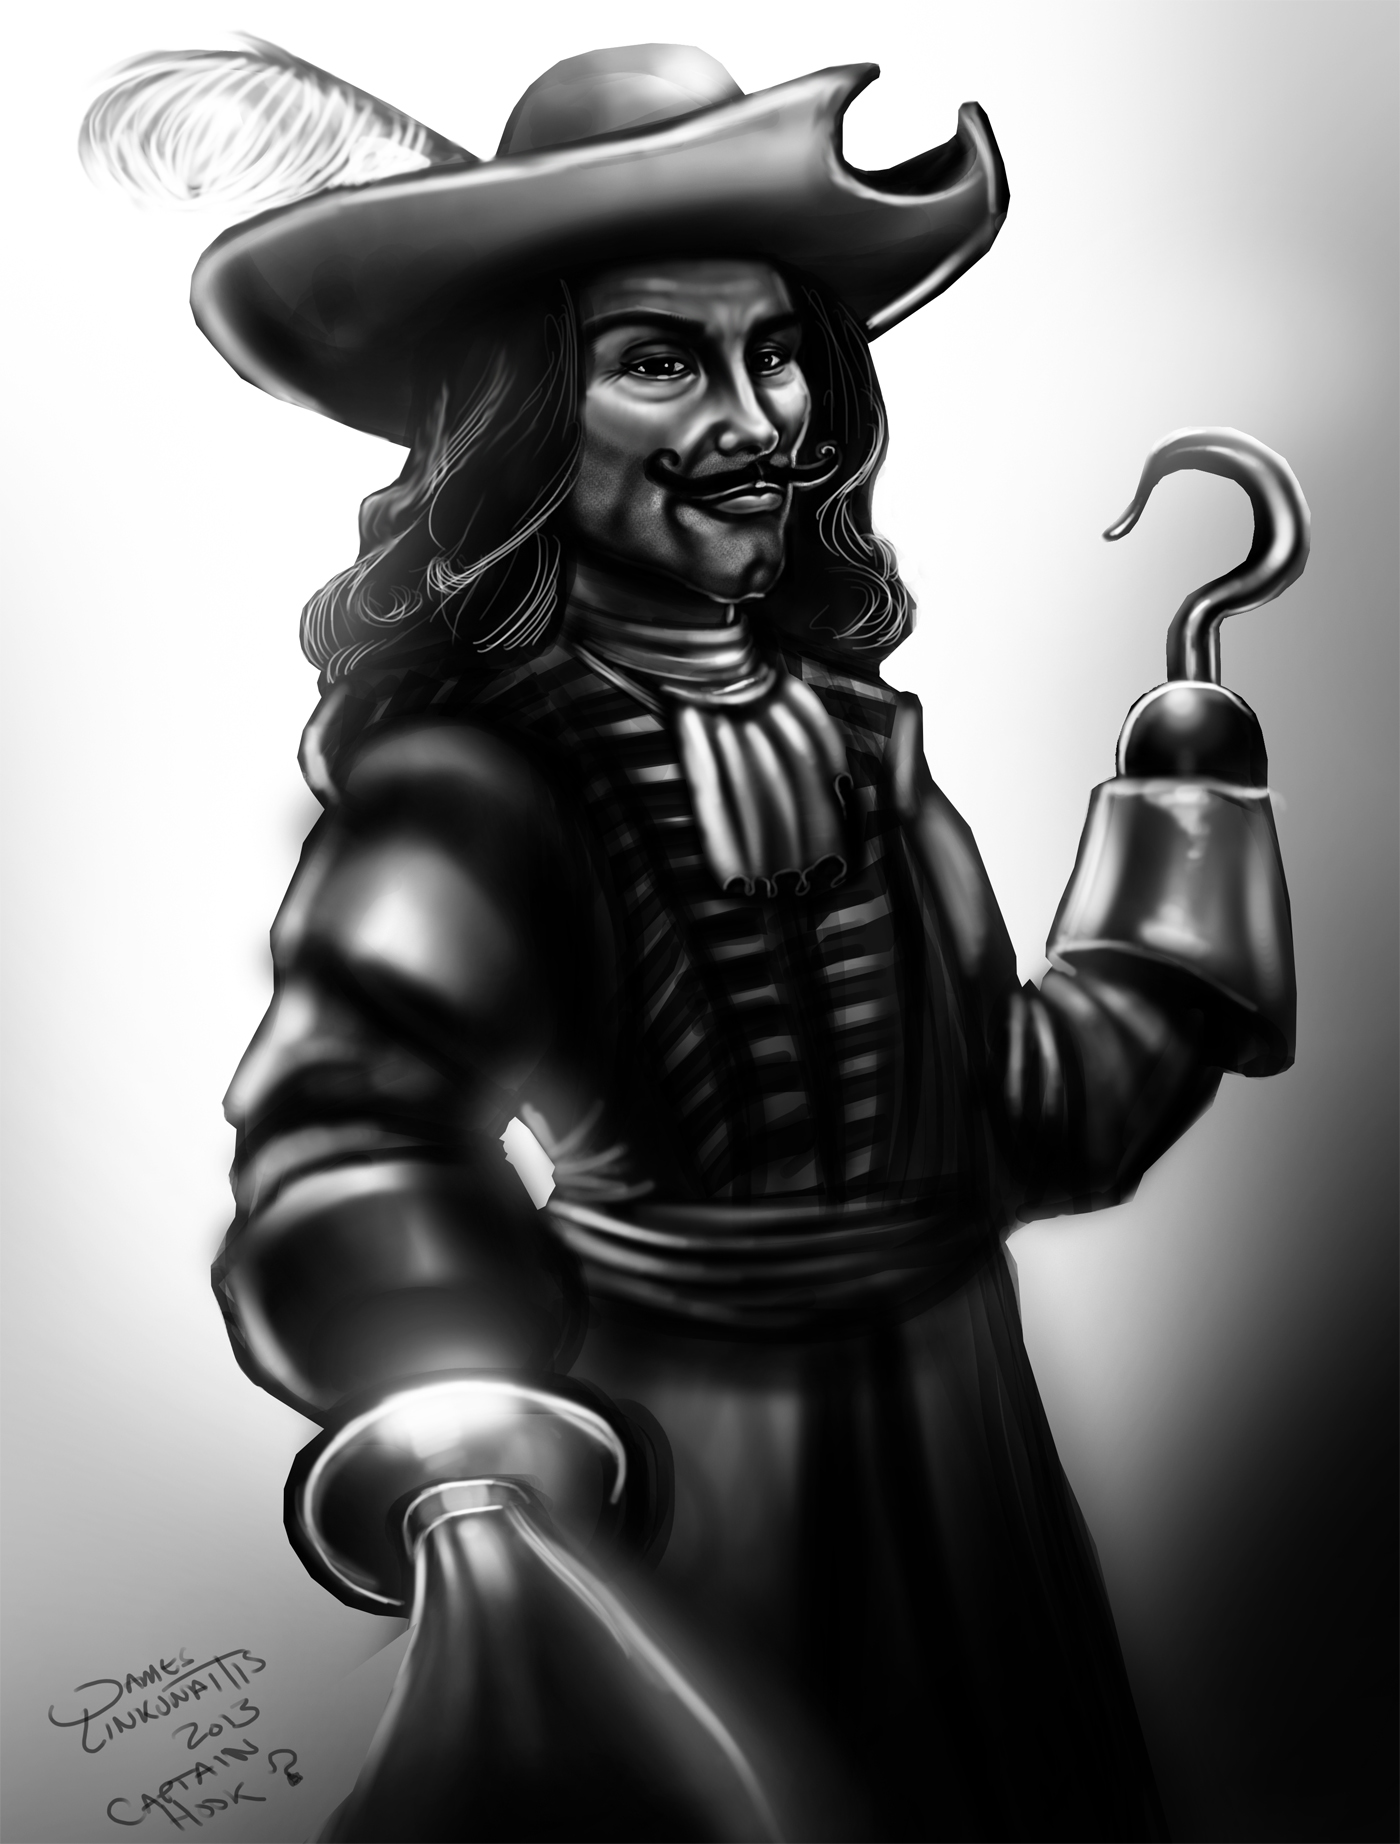 Captain Hook (DSC) by jameslink